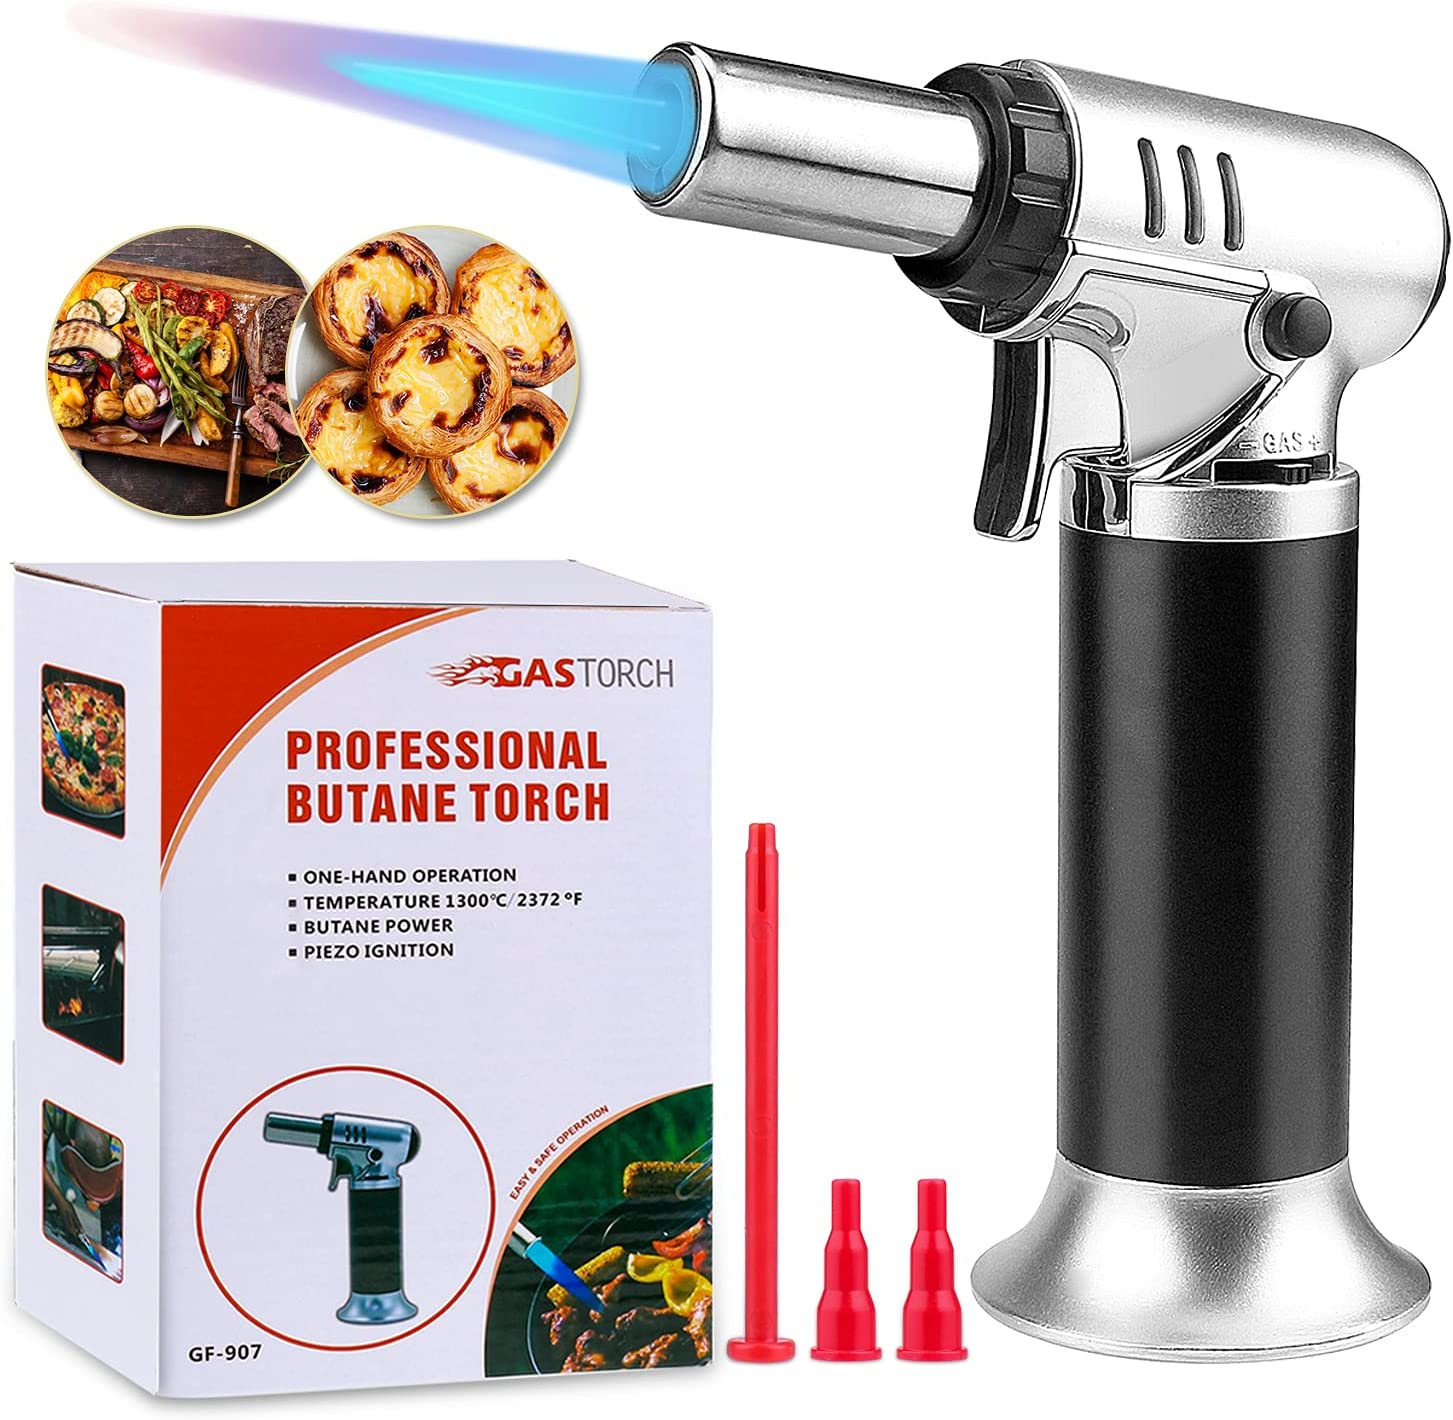 Butane Torch Aottom Refillable Torc Spring new work New Free Shipping one after another Blowtorch Culinary Kitchen